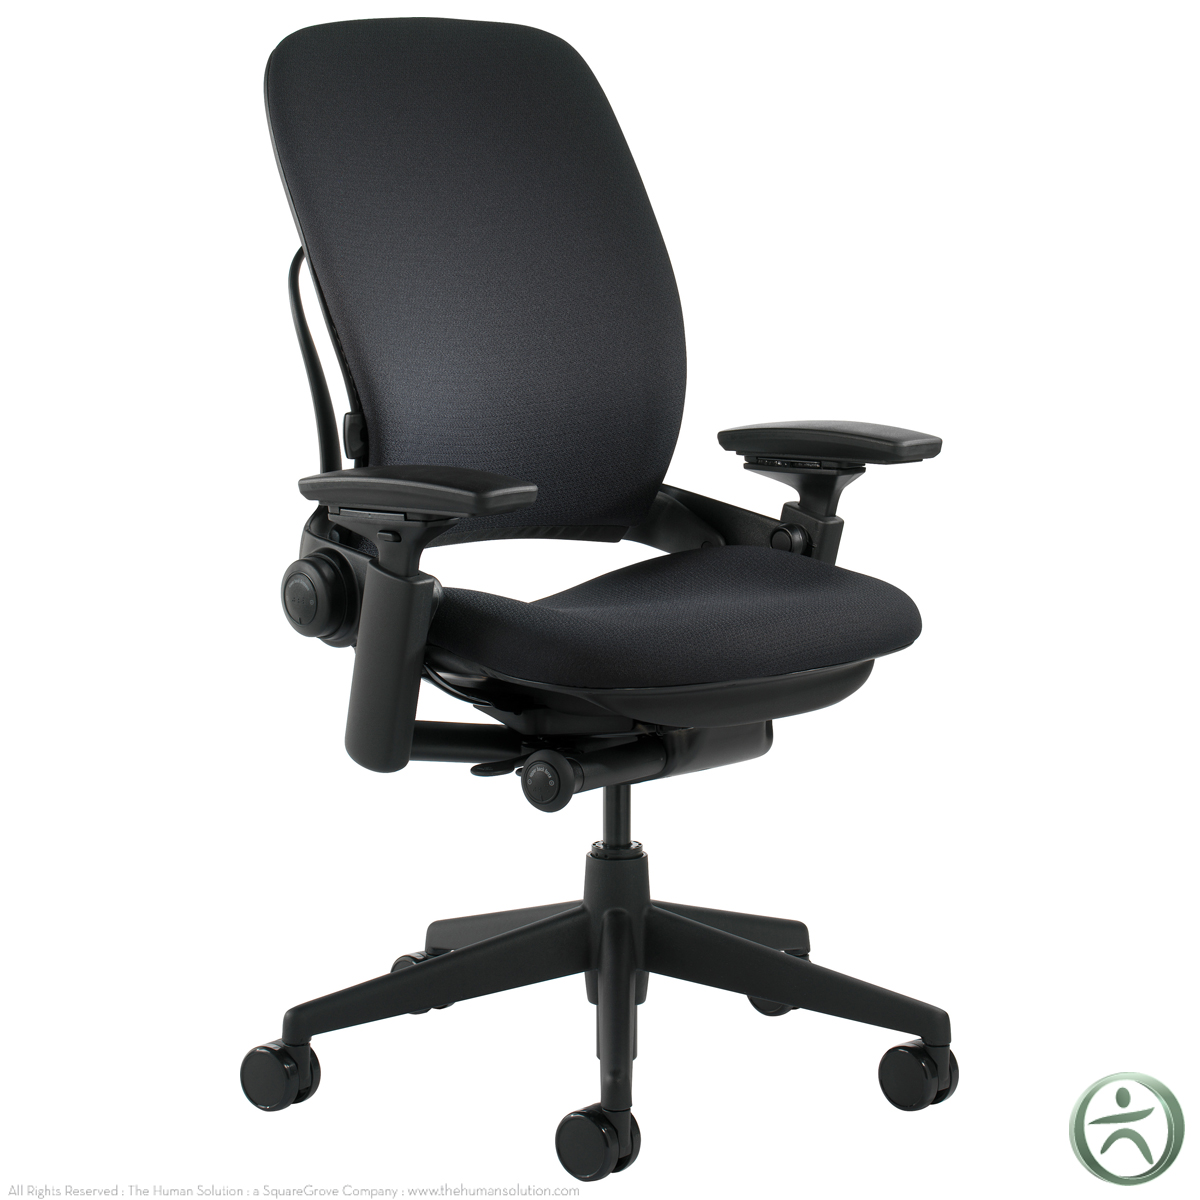 Steelcase Chairs Steelcase Leap Chair Open Box Clearance